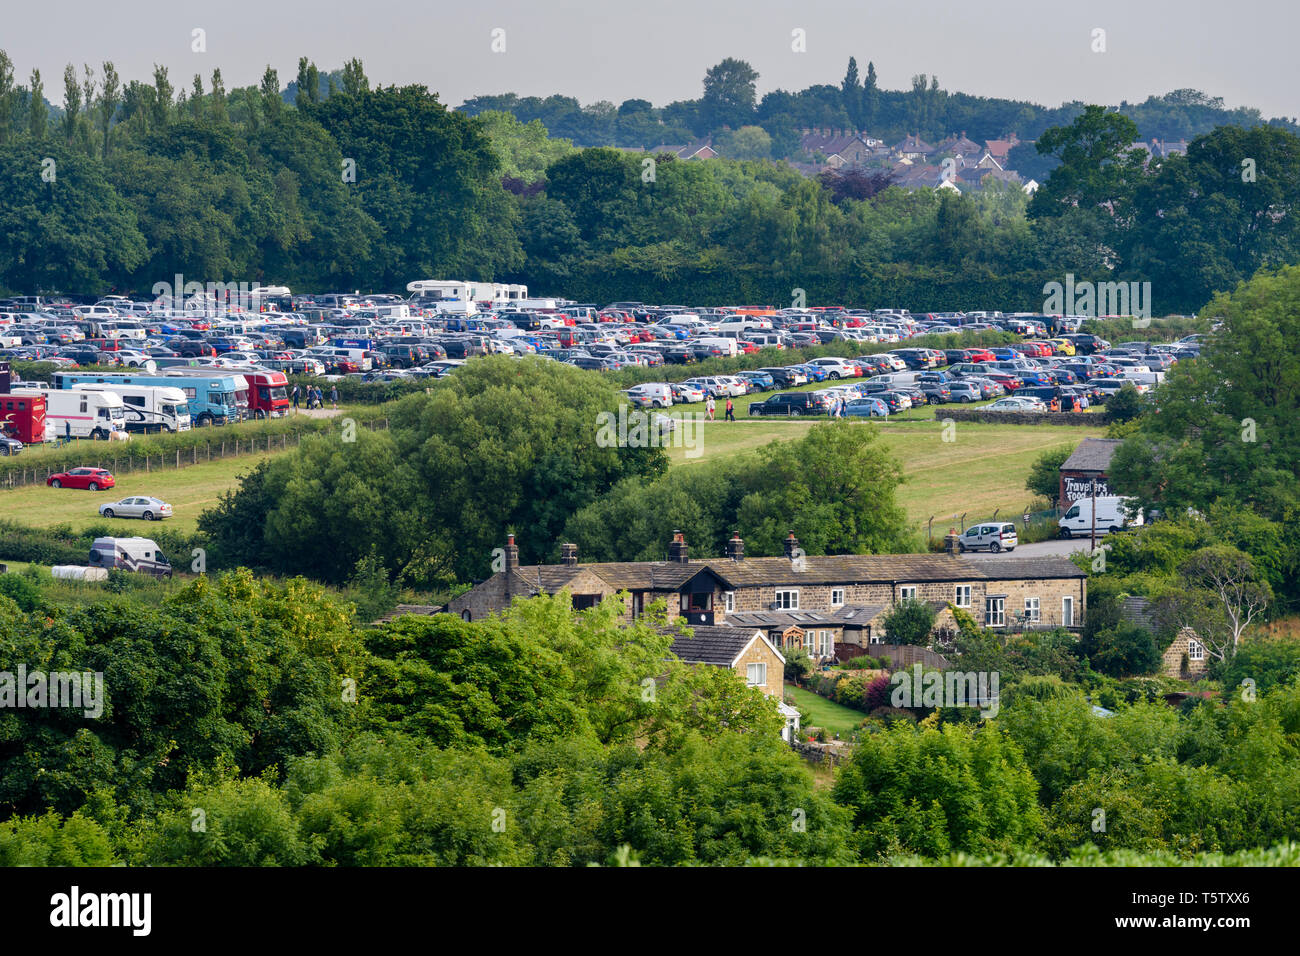 High view of busy showground car park under blue sky in summer (rows of vehicles parked in field) - Great Yorkshire Show, Harrogate, England, UK. - Stock Image